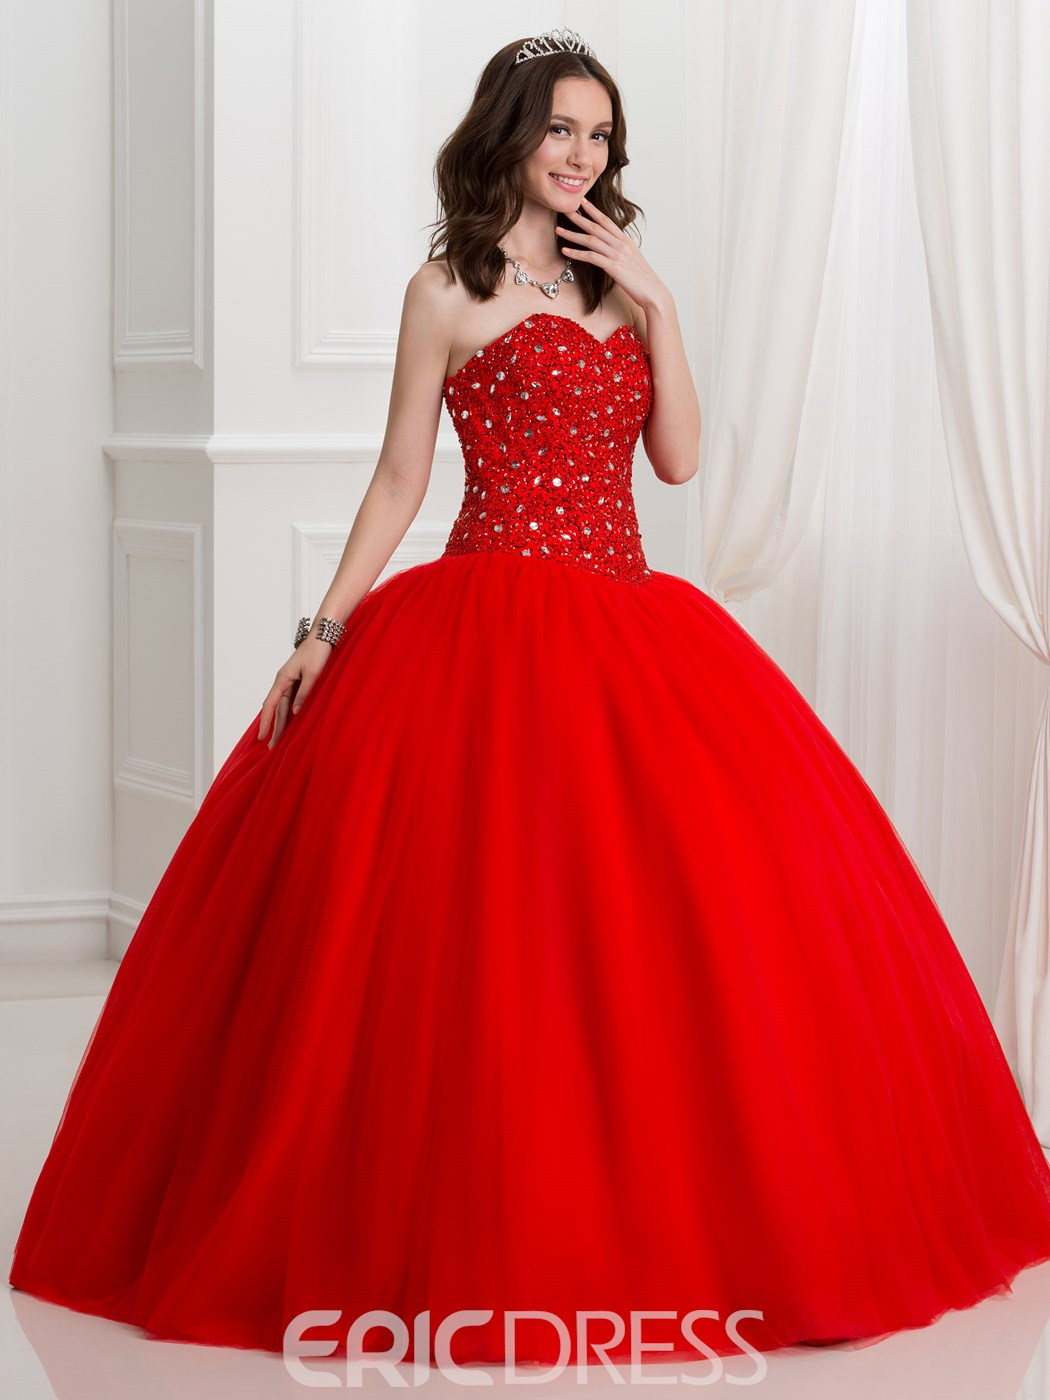 Ericdress Sweetheart Beading Sequins Ball Gown Quinceanra Dress